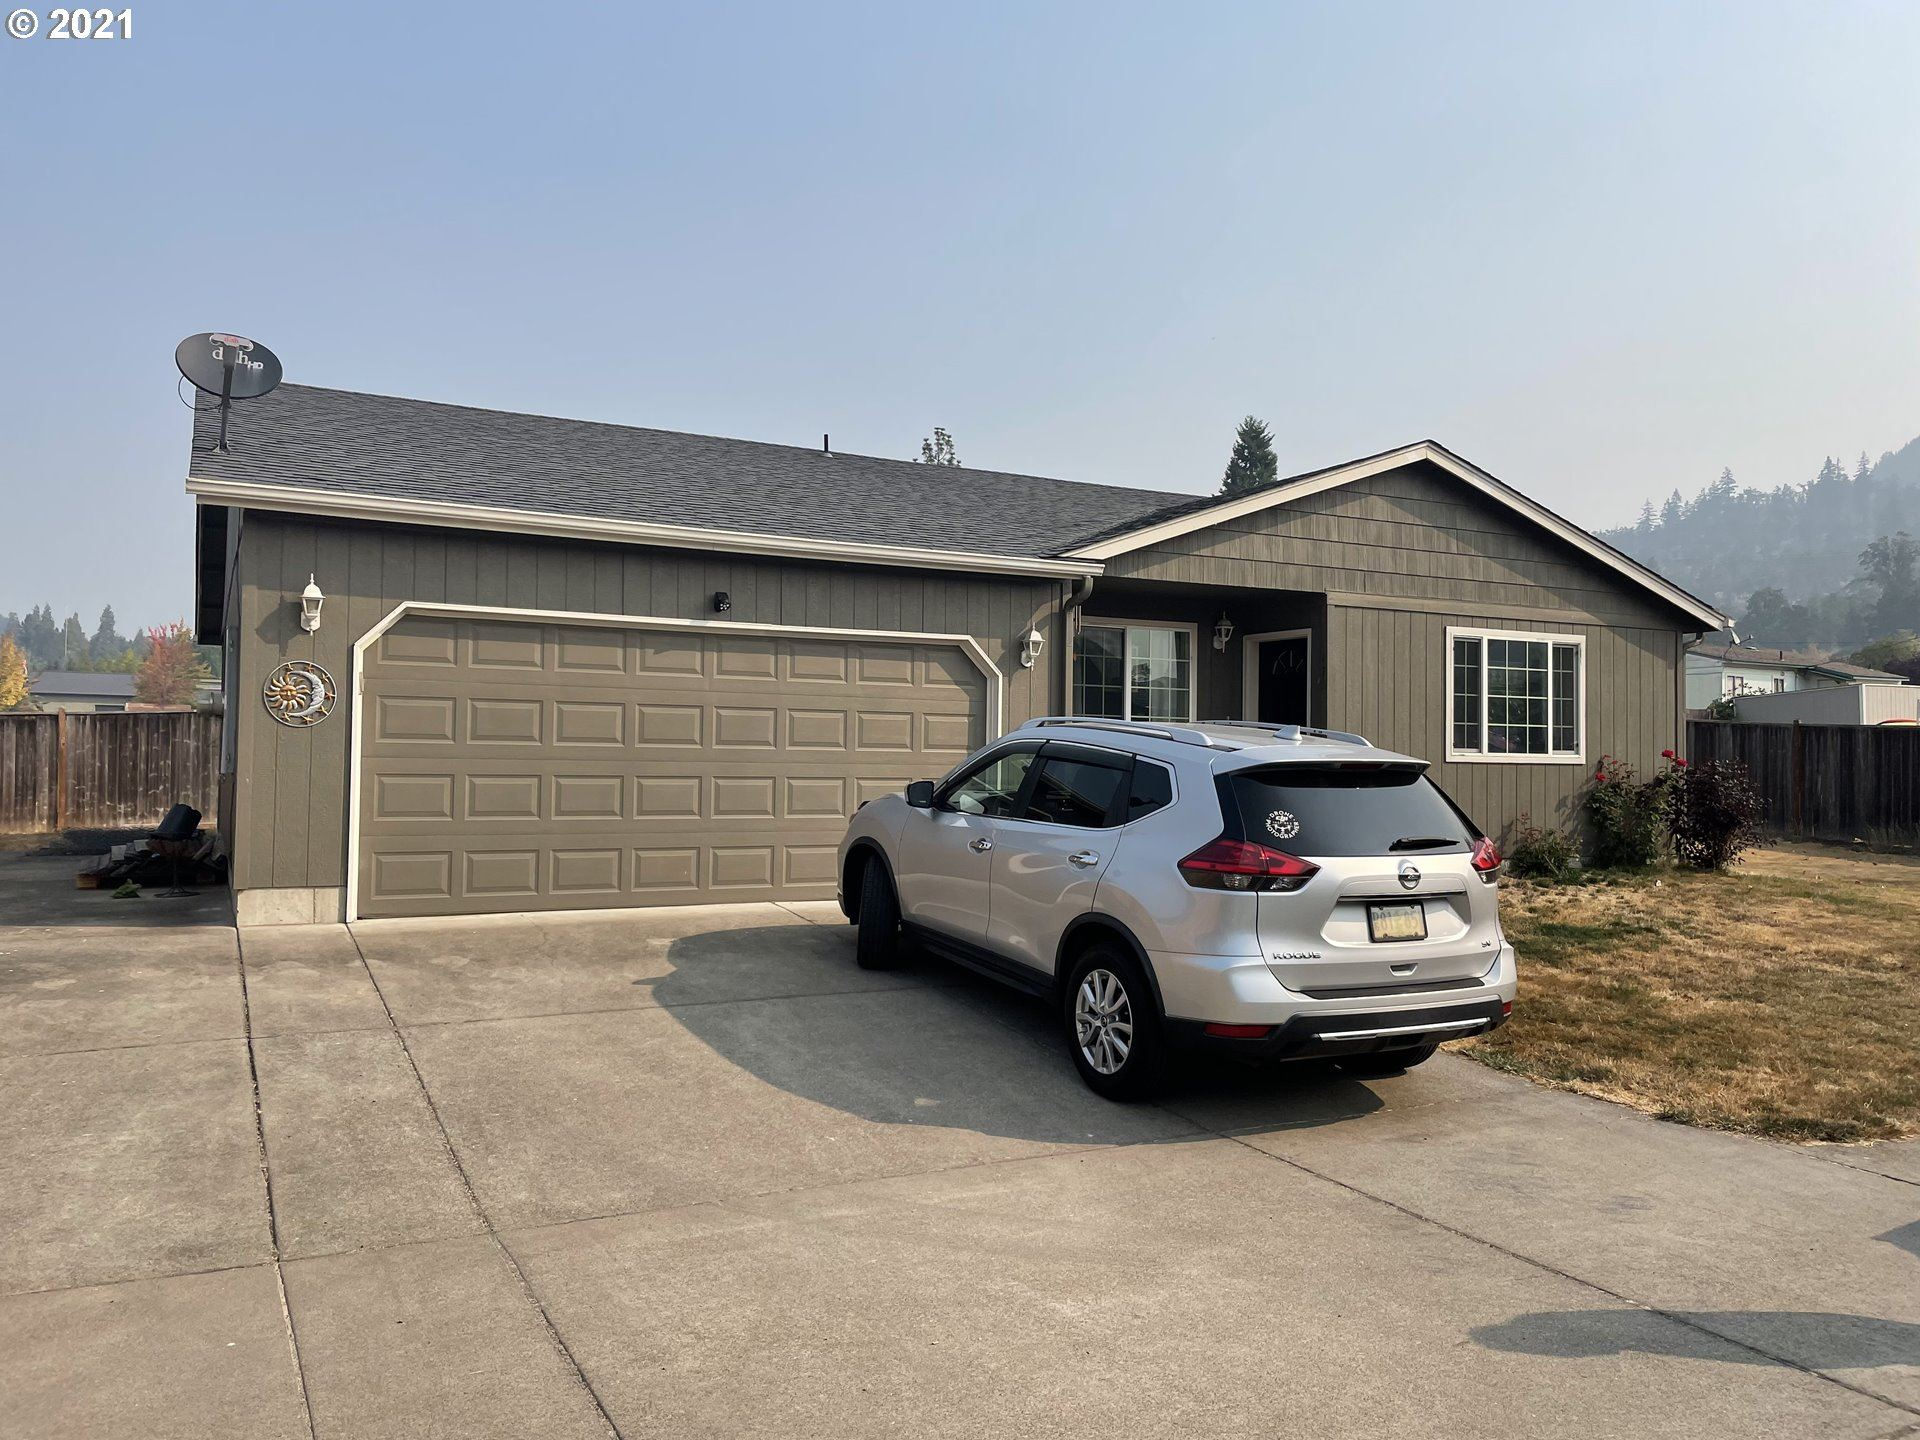 Photo for 476 N MOSS ST, Lowell, OR 97452 (MLS # 21318856)